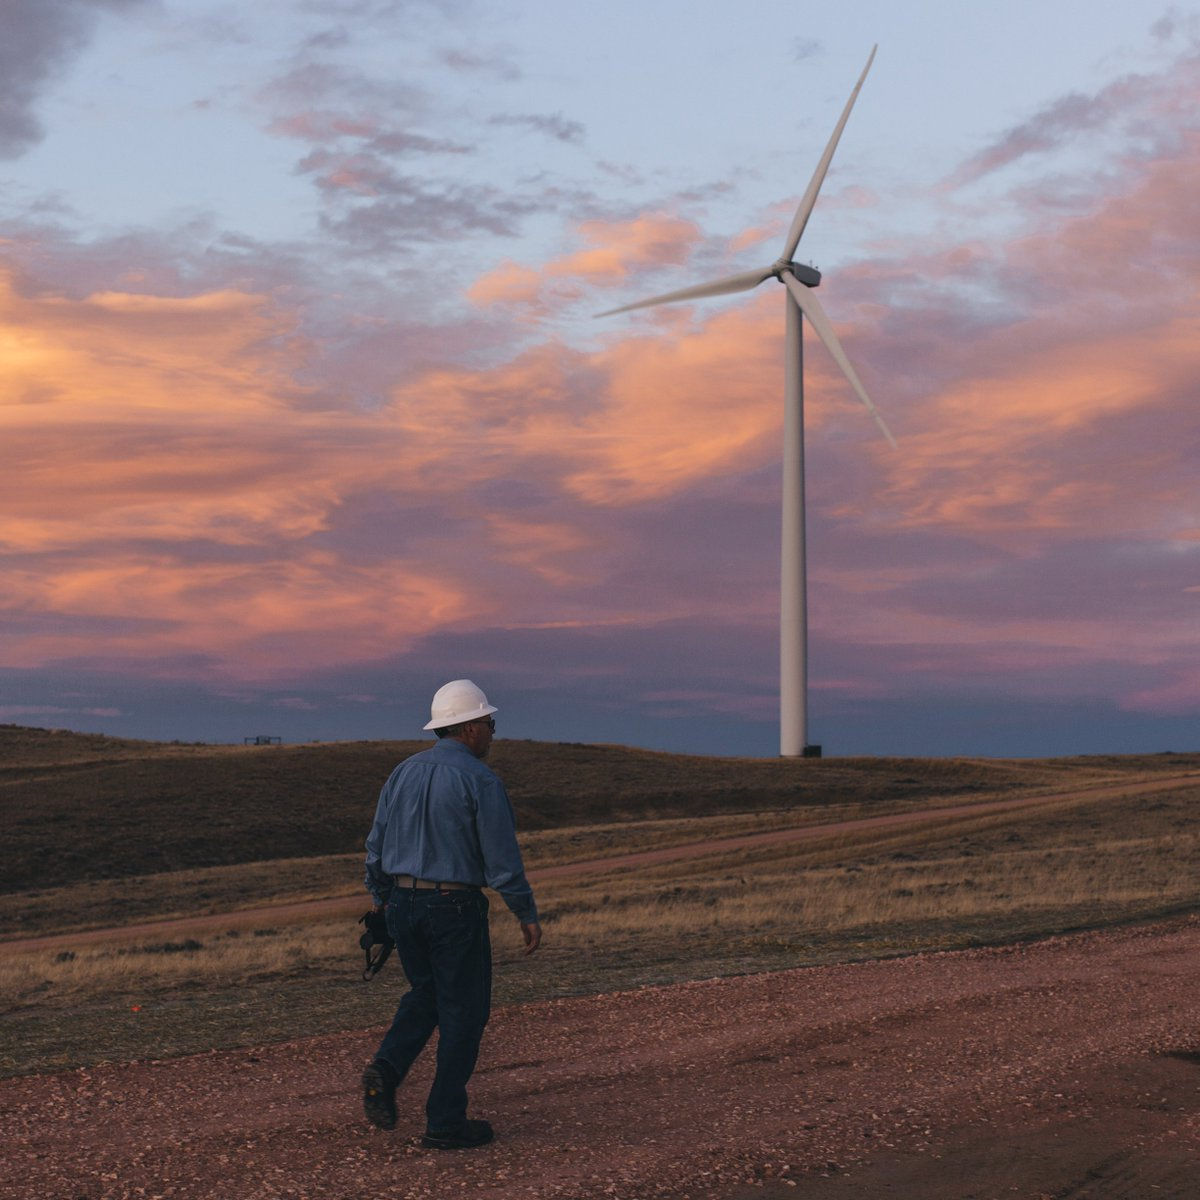 New data show the U.S. is number one in the world in wind energy production: https://t.co/dbN388VLFv  #windworks https://t.co/JCXvBrHhxx